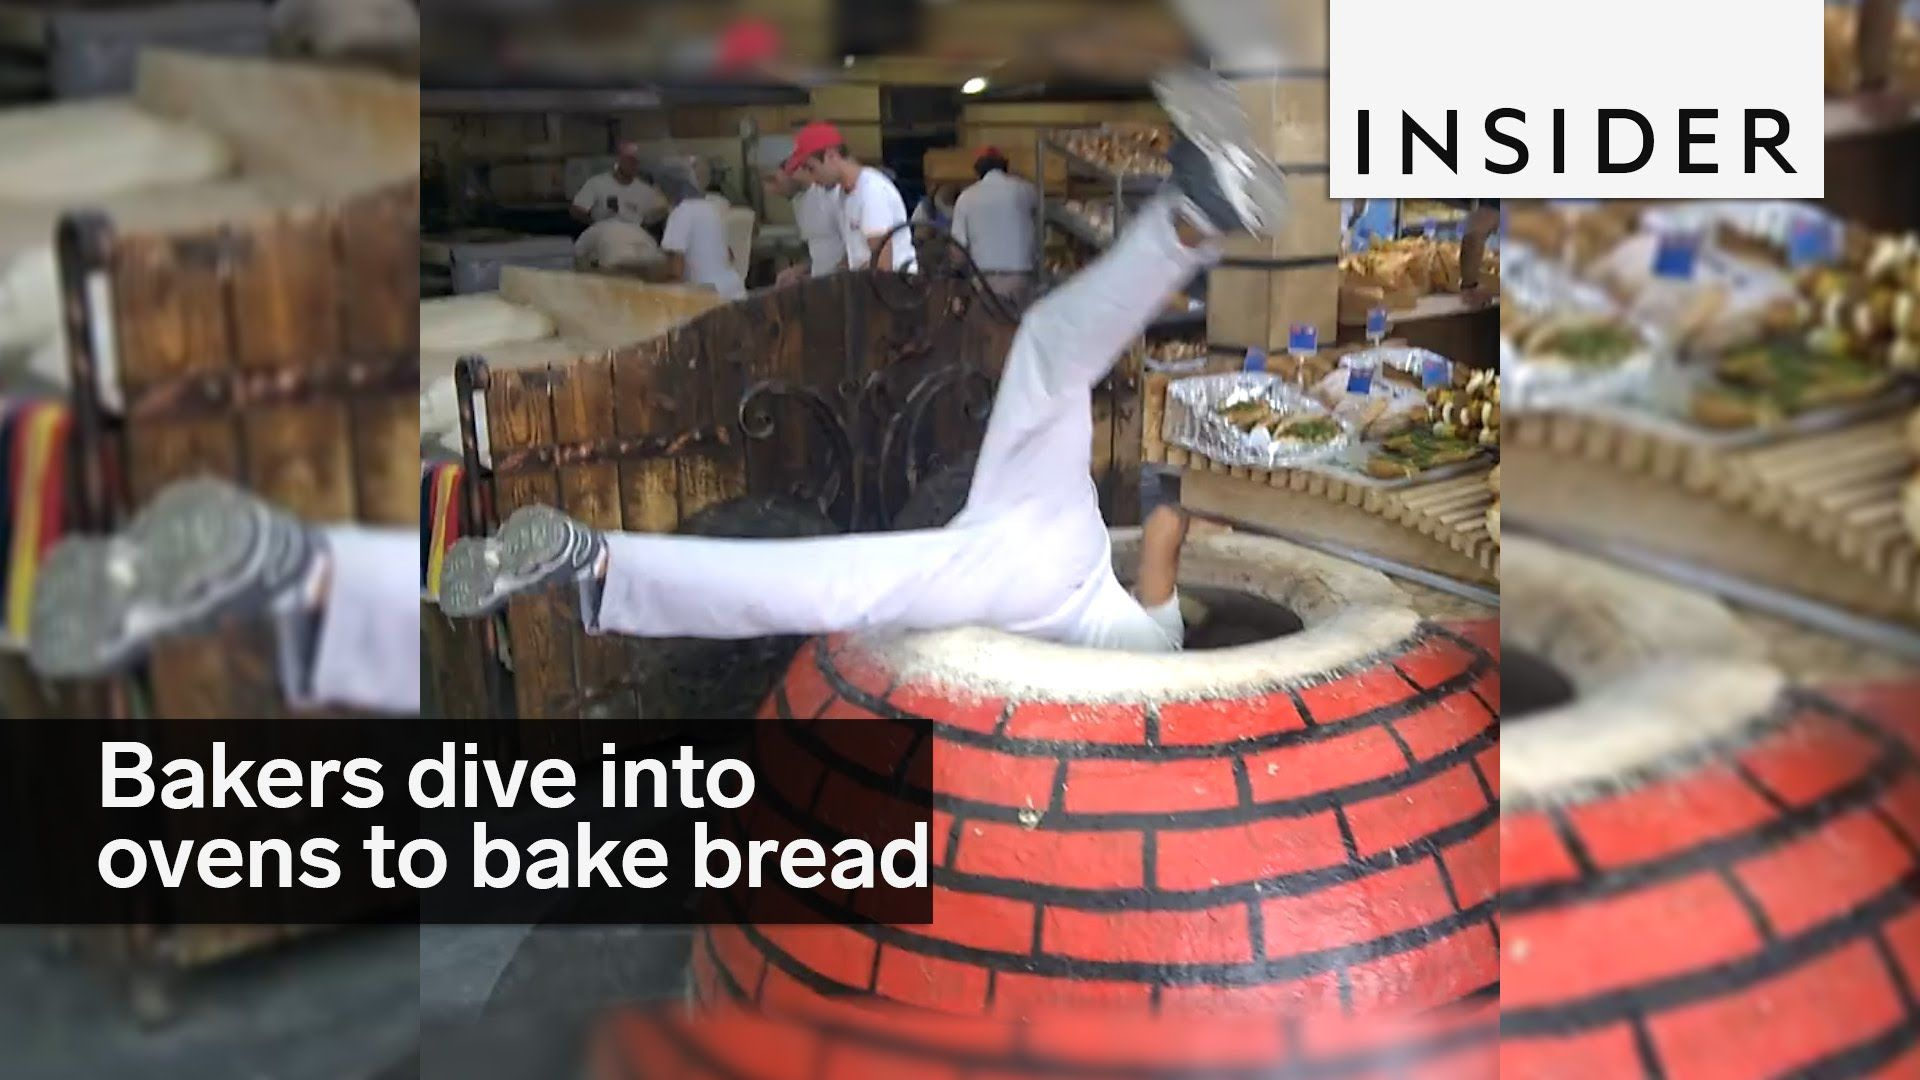 Bakers dive into ovens to bake this bread